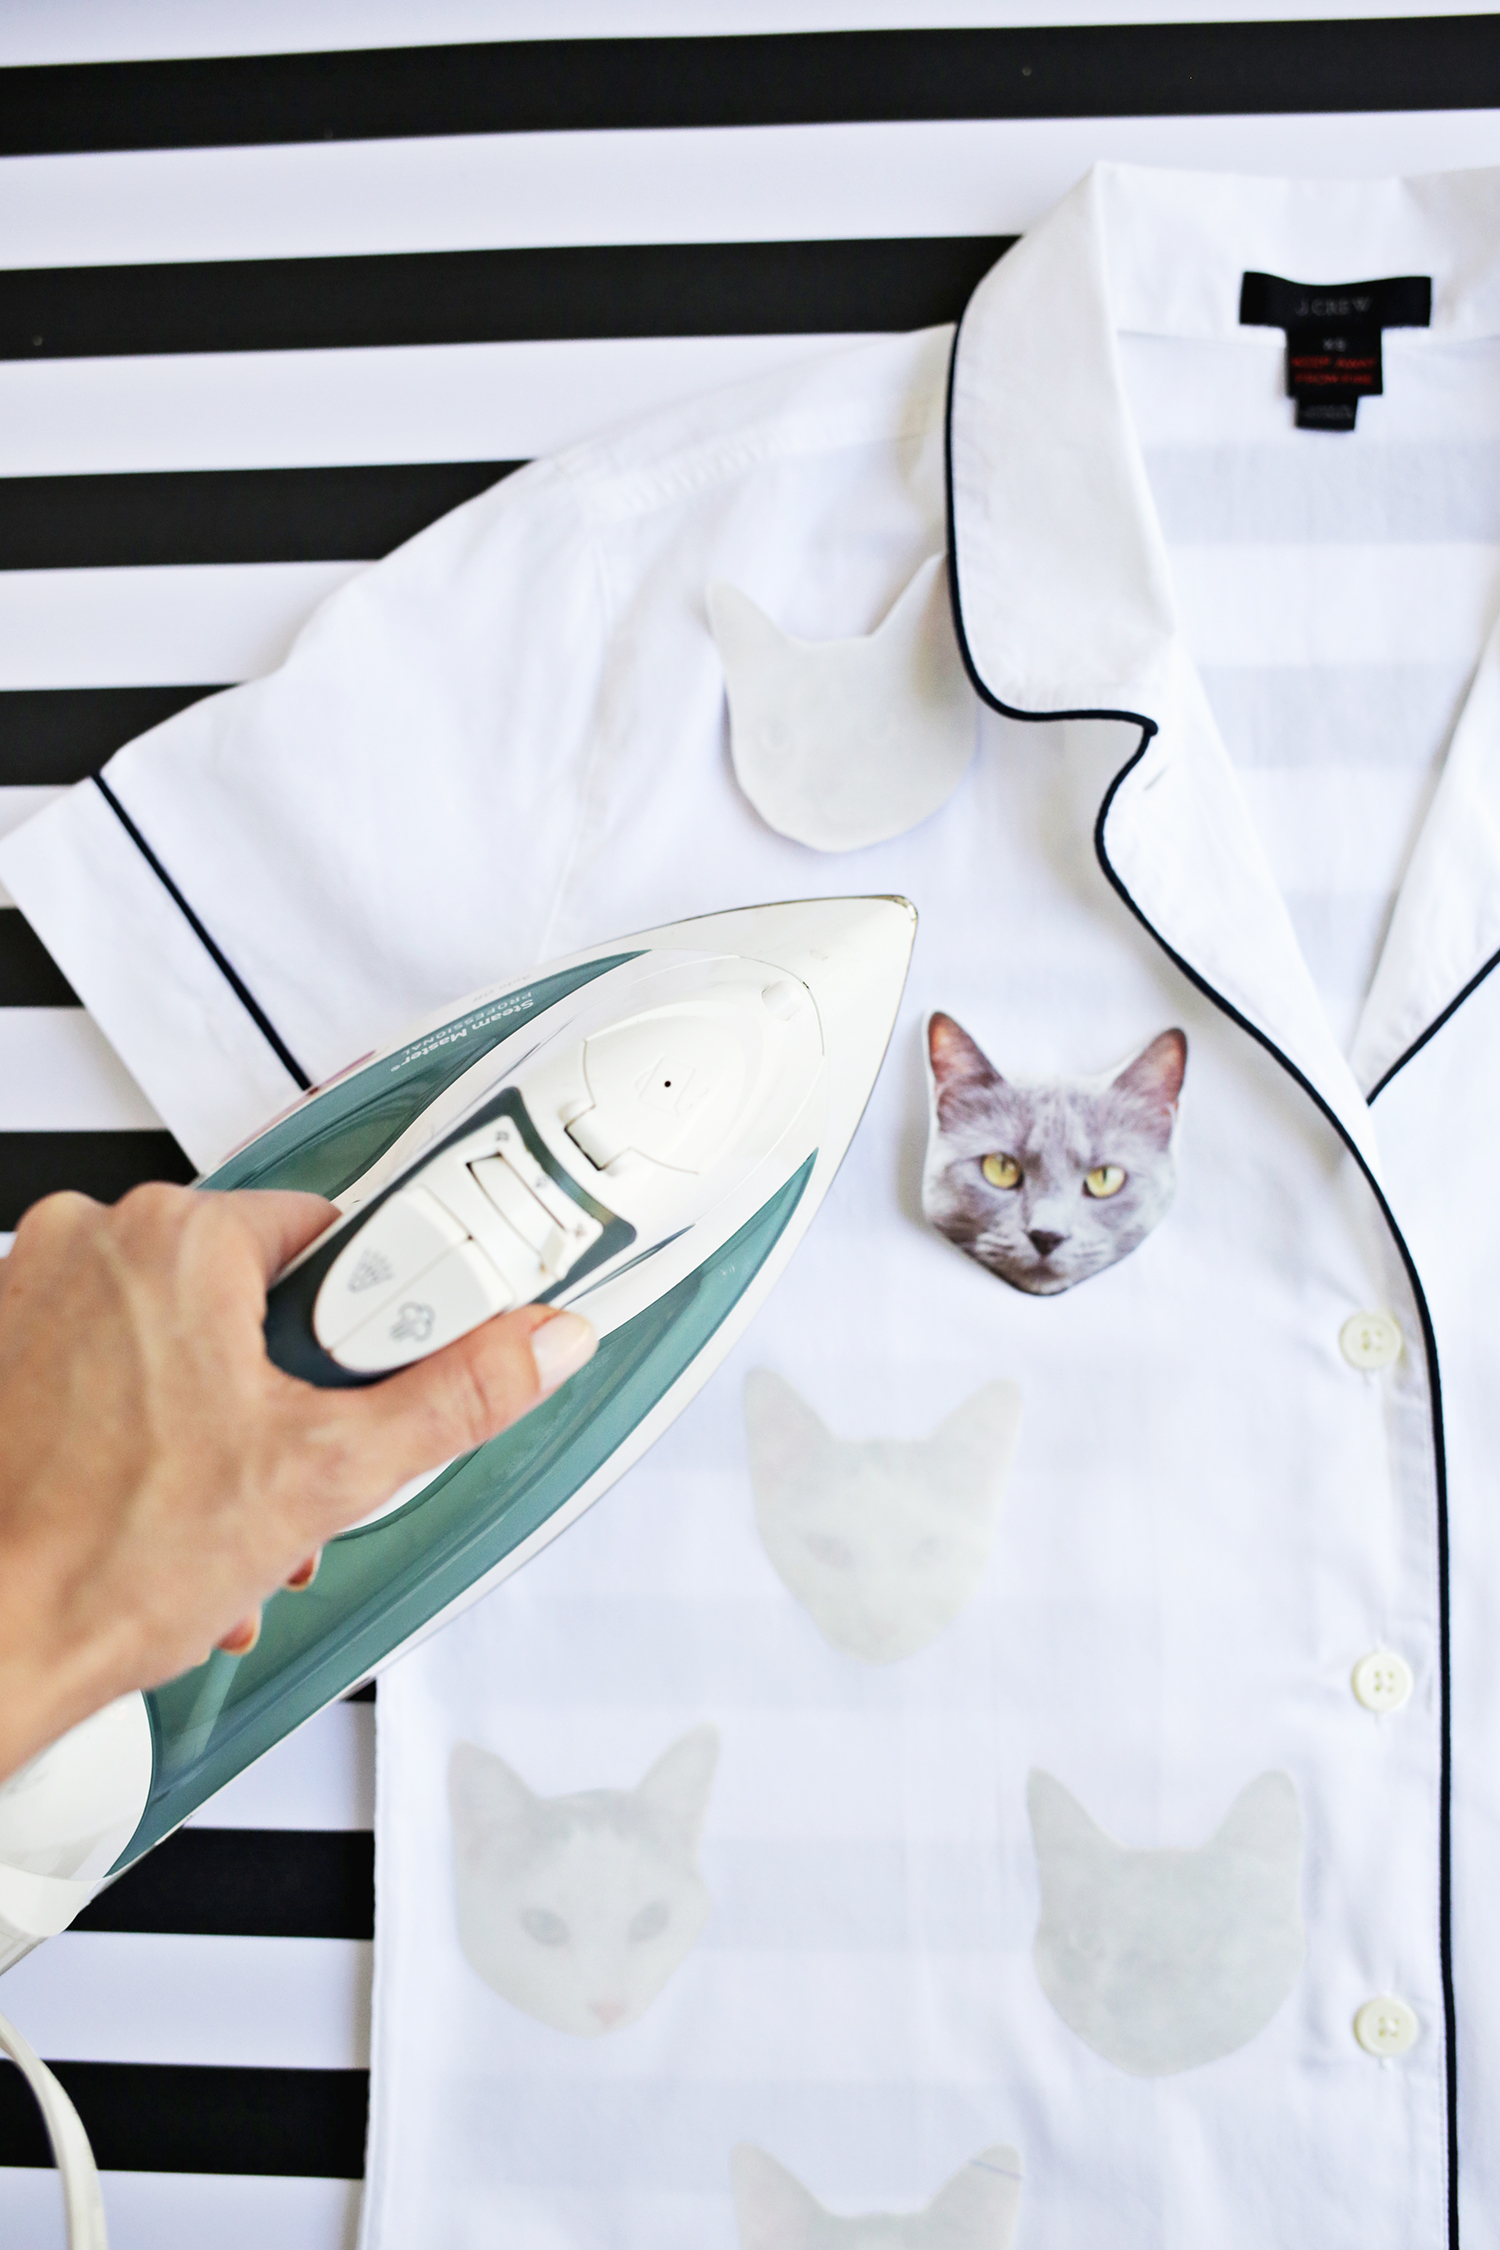 Make Your Own Pet Photo Pajamas! (click through for more!)